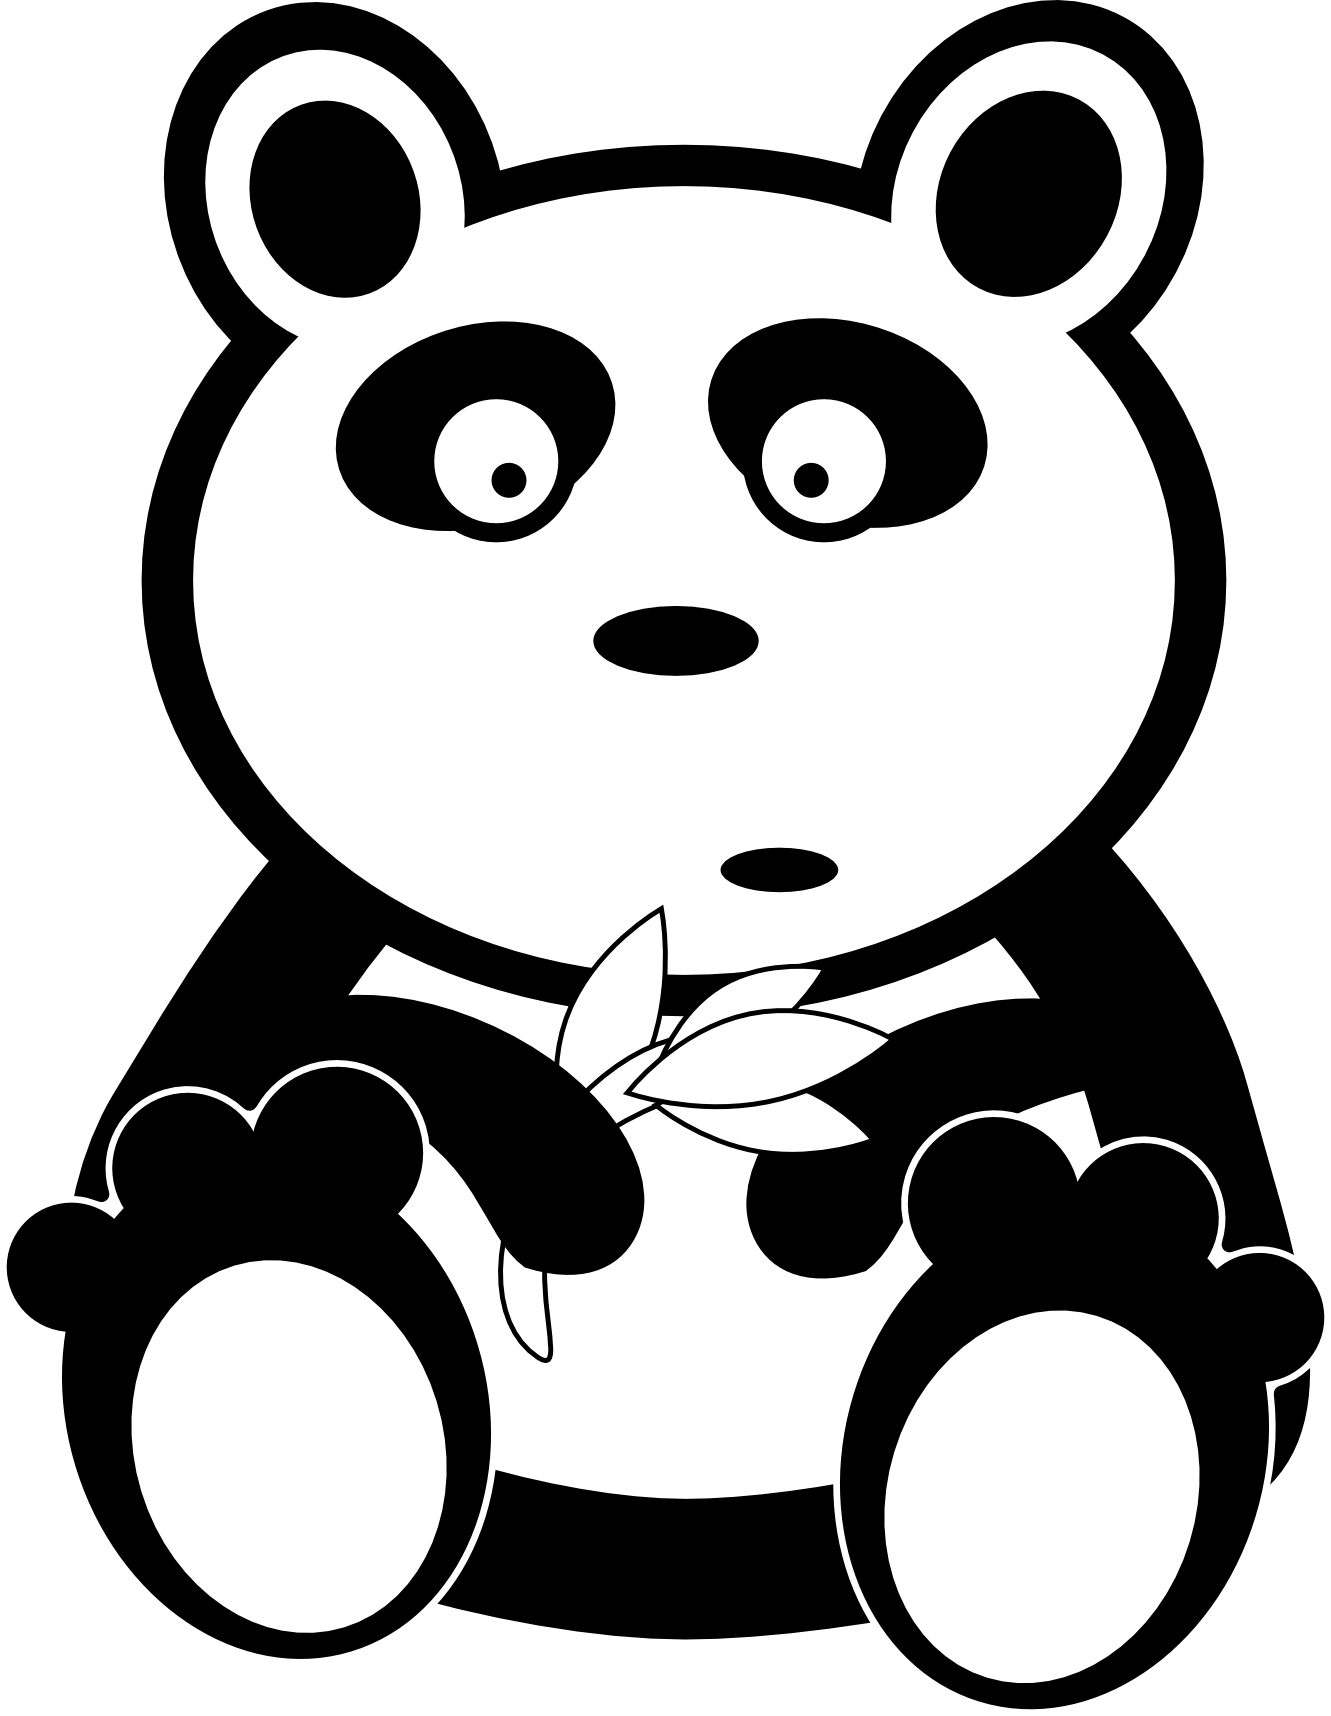 Panda clipart big object. Free bear md download